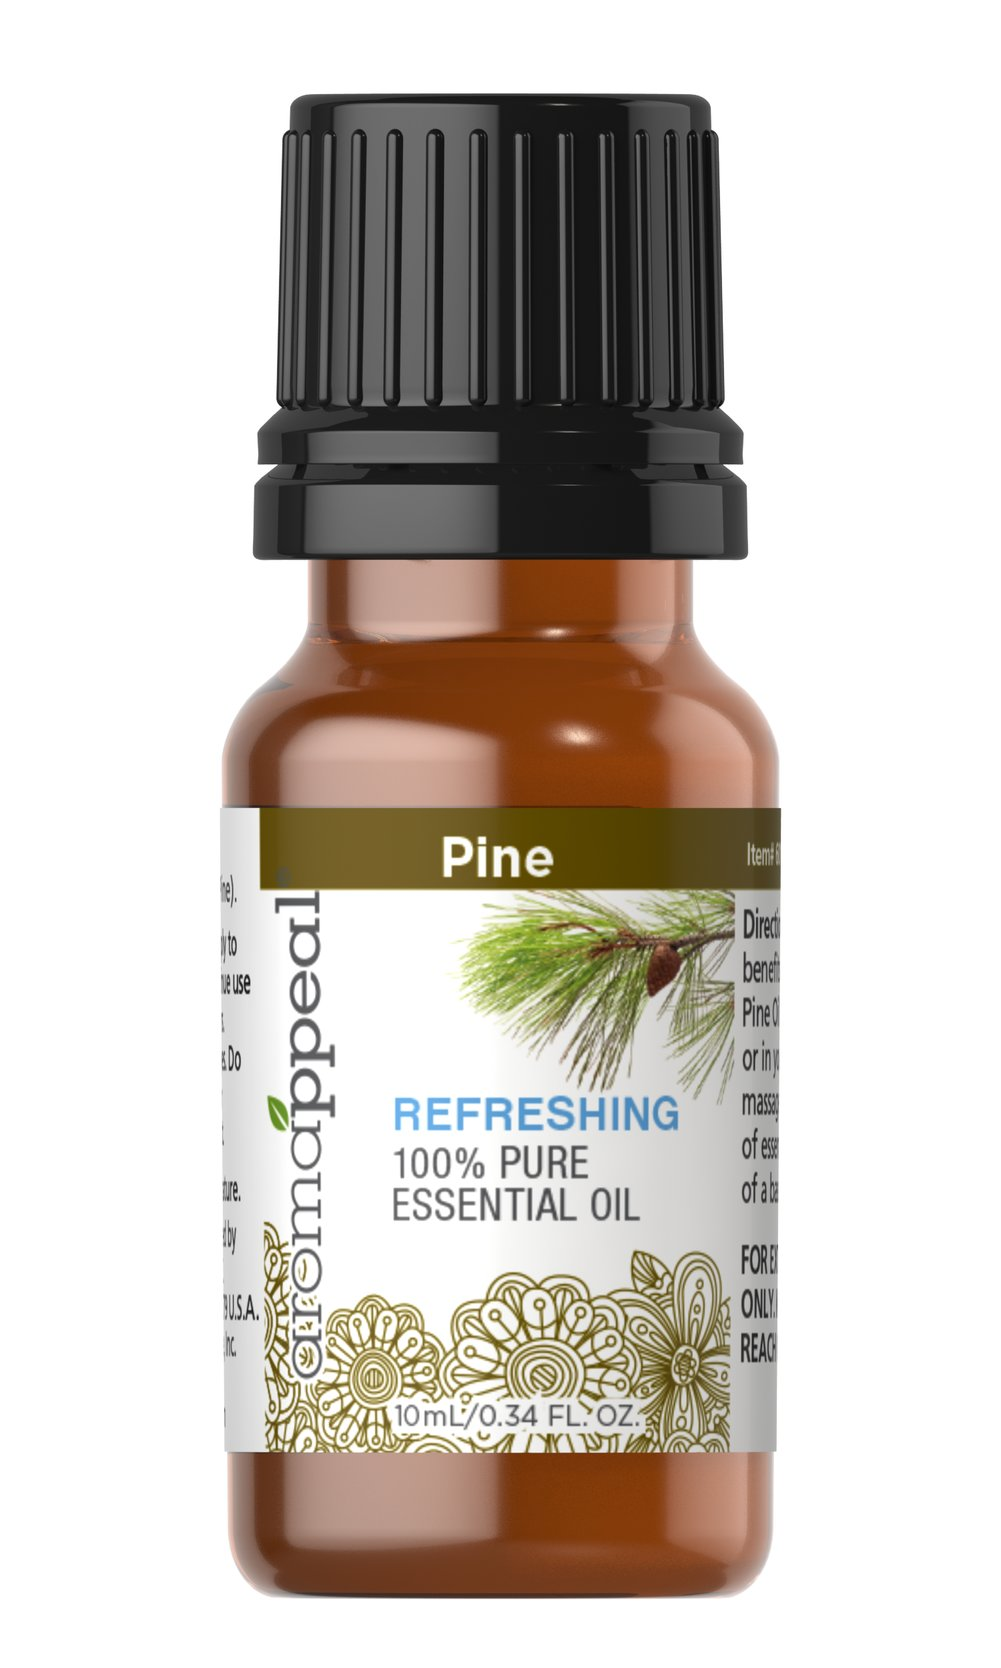 Pine 100% Pure Essential Oil Awaken your senses with the woody, evergreen aroma of Pine. This vibrant oil is powerfully distinct and has the ability to leave you centered and utterly refreshed. 10 ml Oil  $12.99